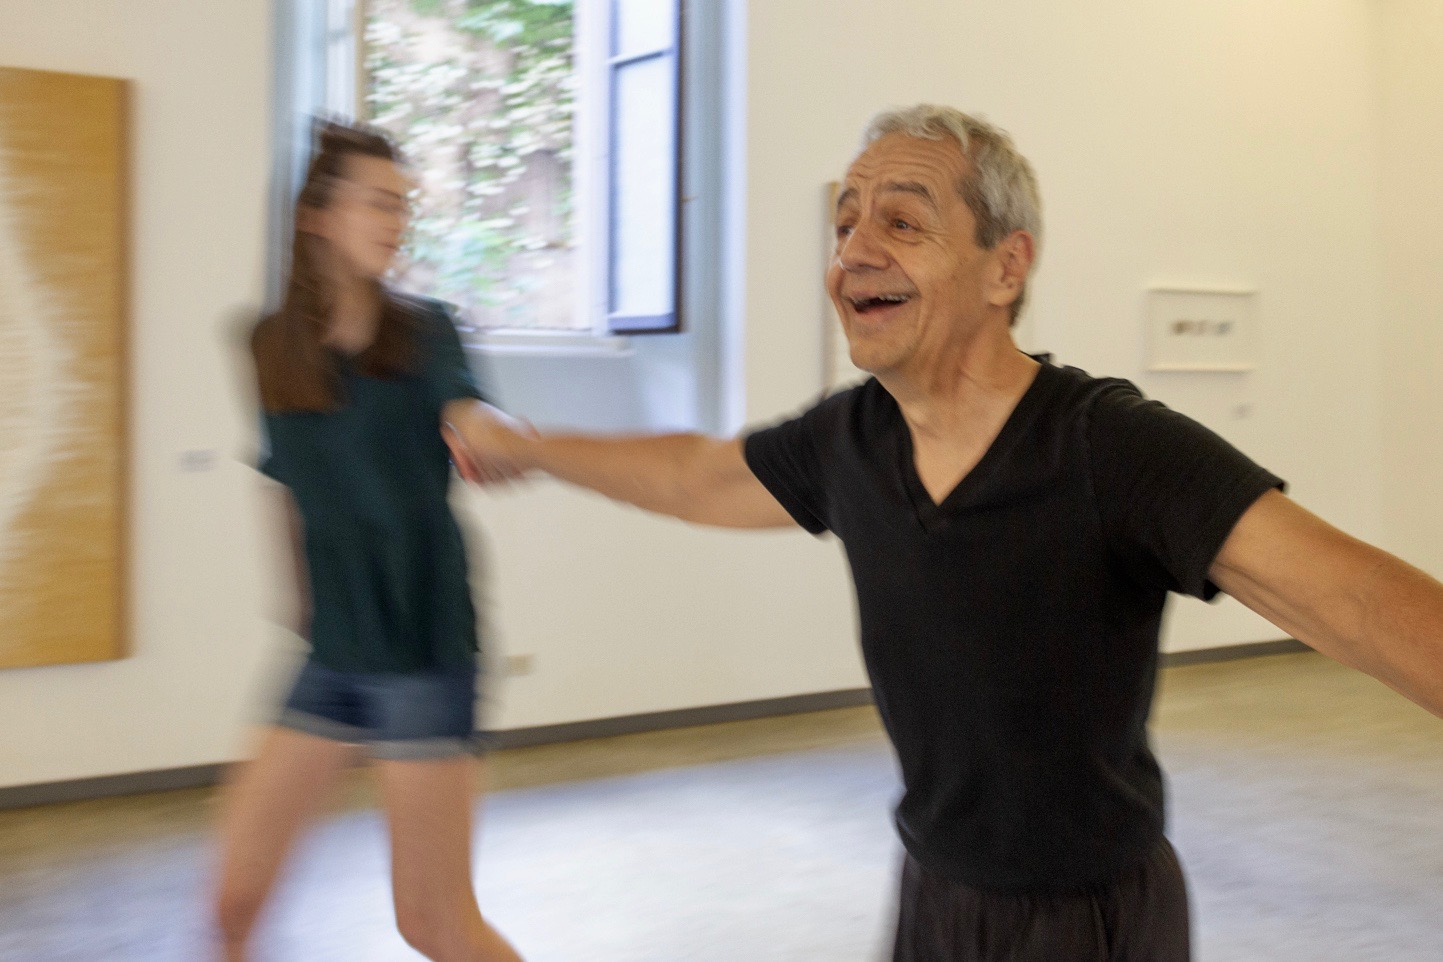 R duo dance off C out of focus.jpg